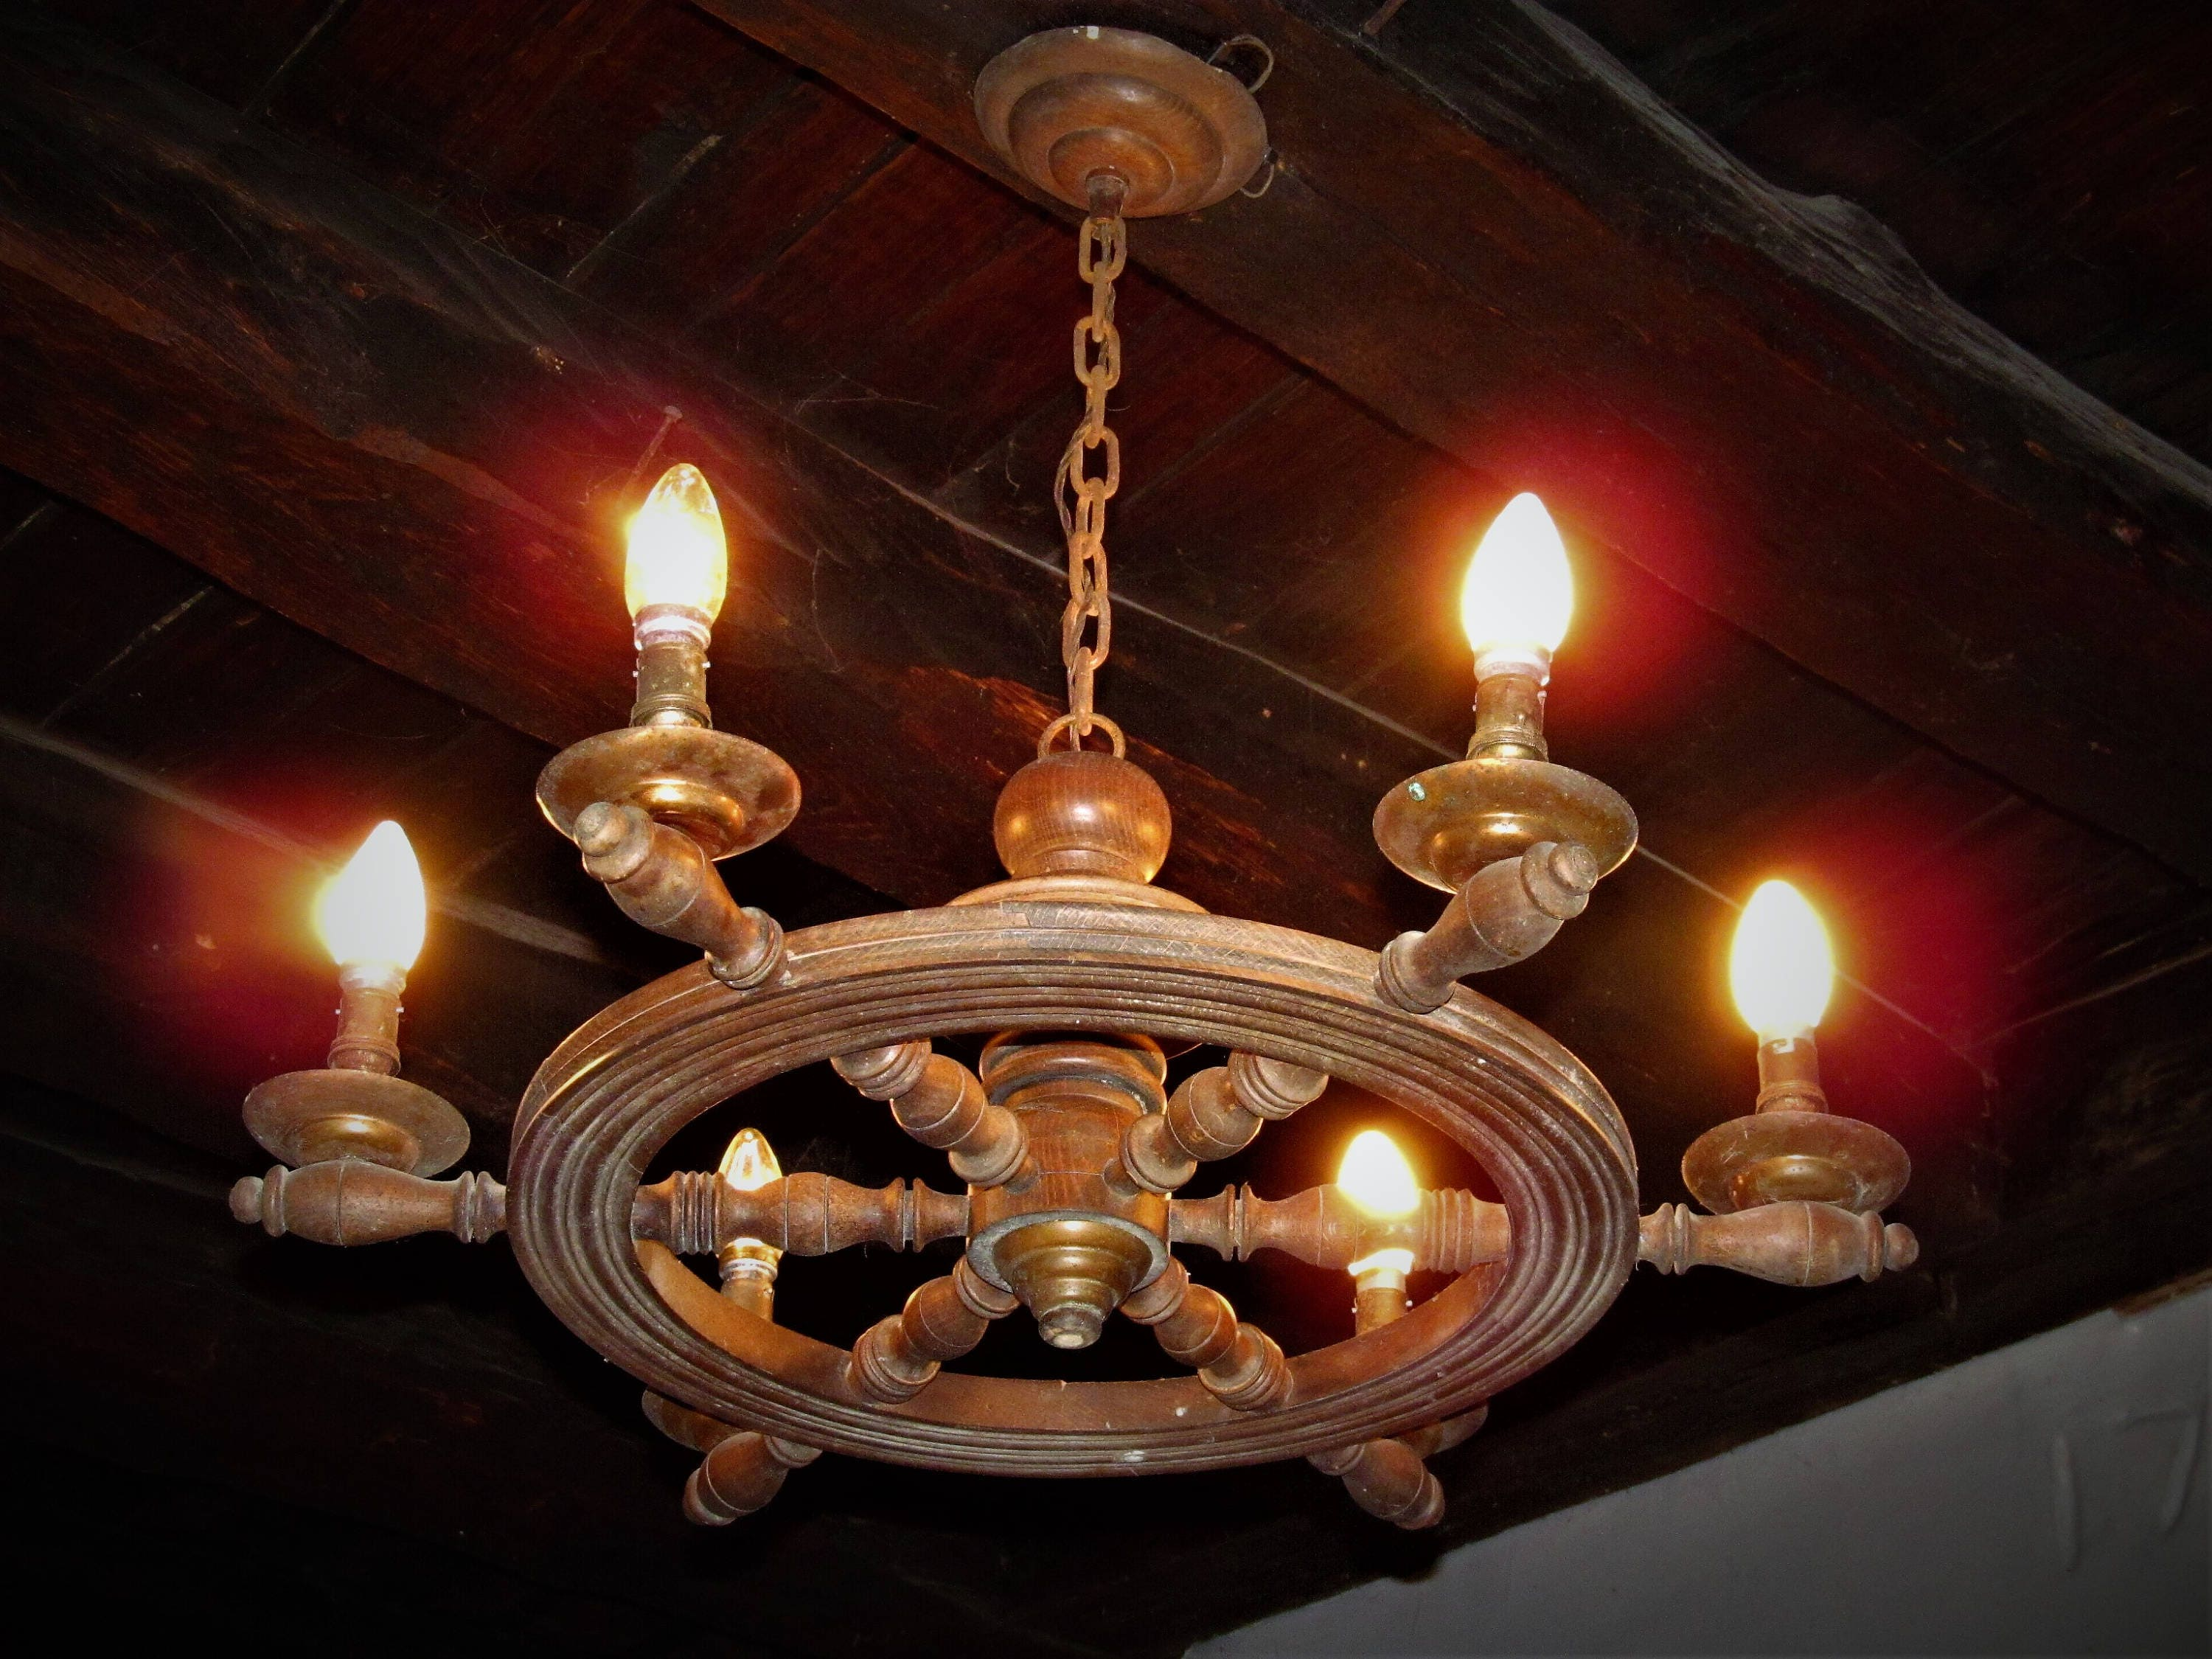 Fabulous antique ships wheel 6 branch wooden french chandelier in fabulous antique ships wheel 6 branch wooden french chandelier in working condition but may need some tlc arubaitofo Image collections